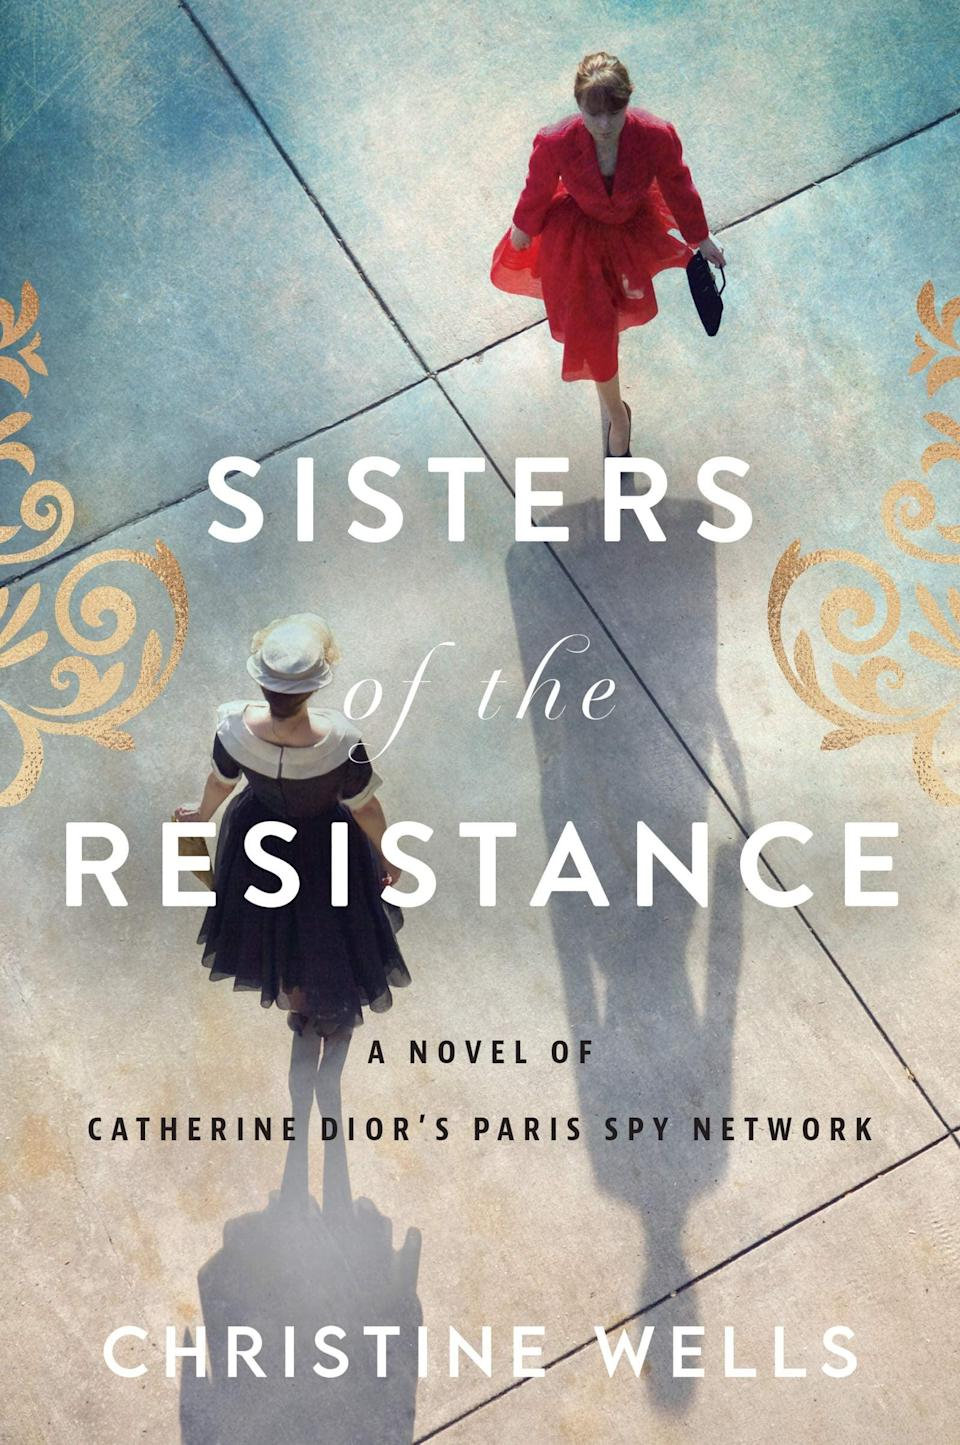 <p>Inspired by the true story of Catherine Dior, <span><strong>Sisters of the Resistance</strong></span> is the story of two sisters who are swept up in the French resistance movement in 1944 Paris. As the sisters are pulled deeper into this underground world of spies and deception, they'll risk everything to make a difference. </p> <p><em>Out June 8</em></p>